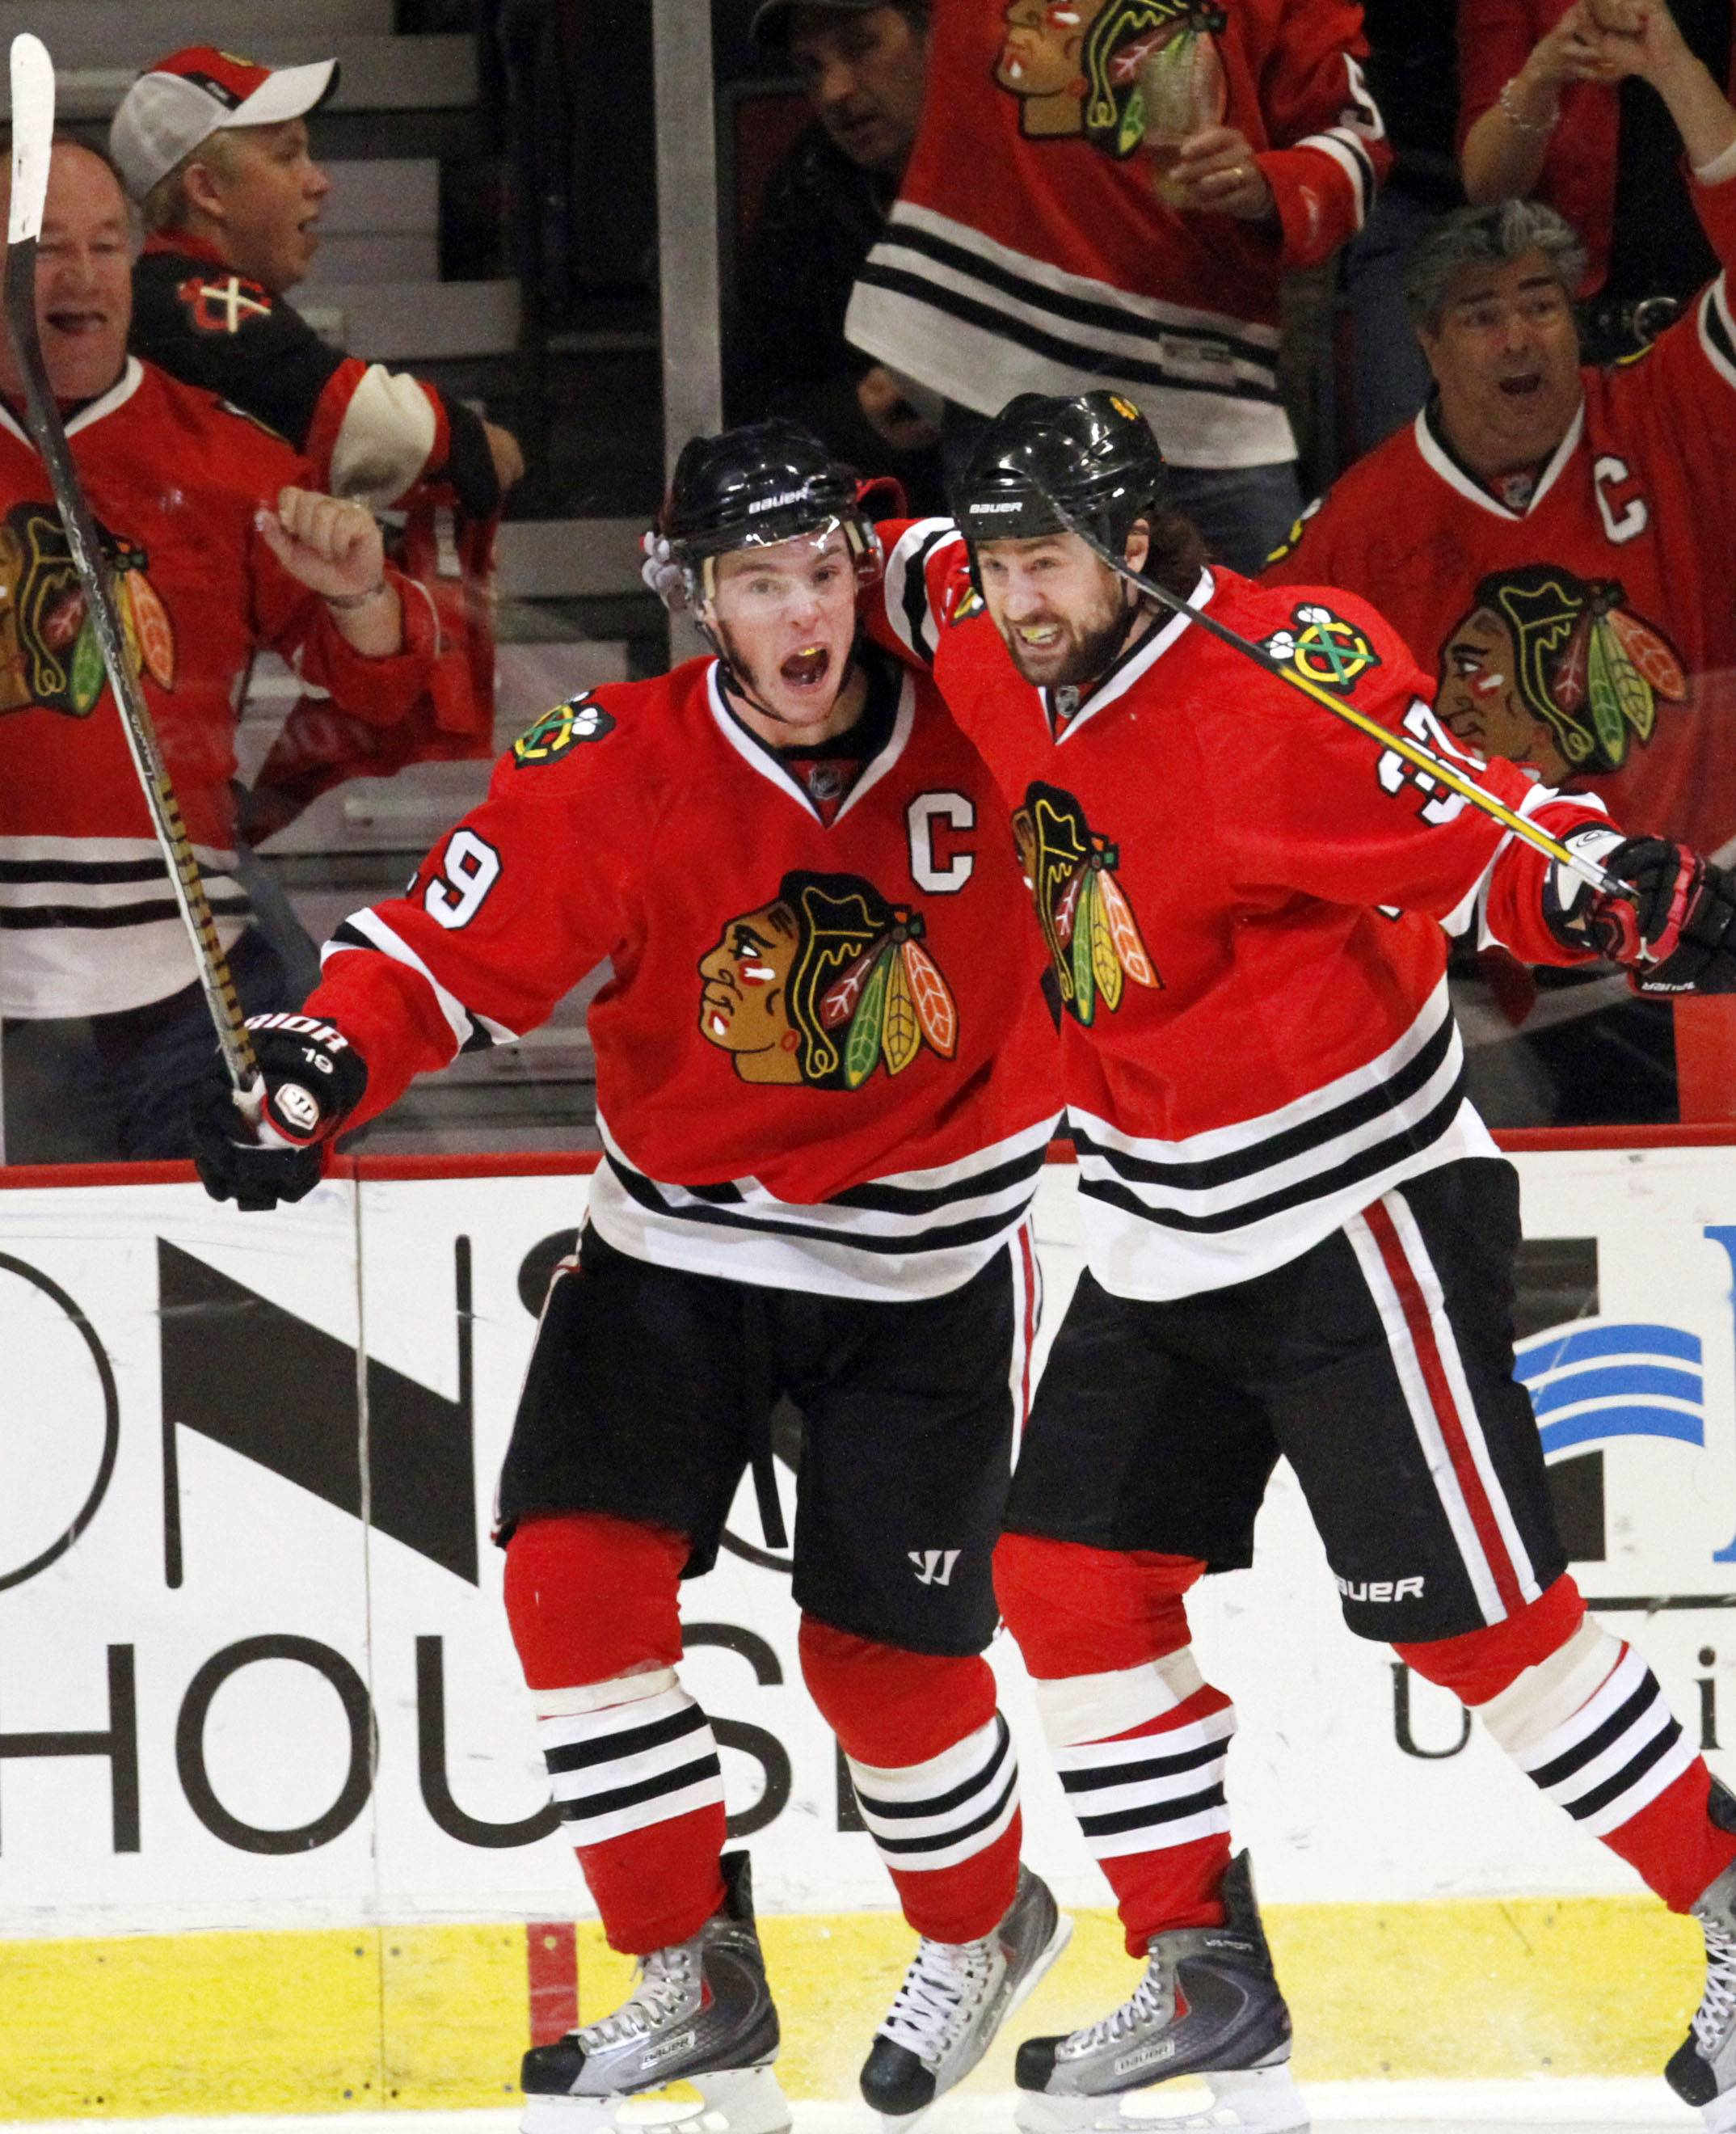 Jonathan Toews, left, celebrates with Adam Burish after scoring his goal against the Vancouver Canucks during the third period of Game 5 of the 2010 Western Conference second-round playoff series at the United Center.